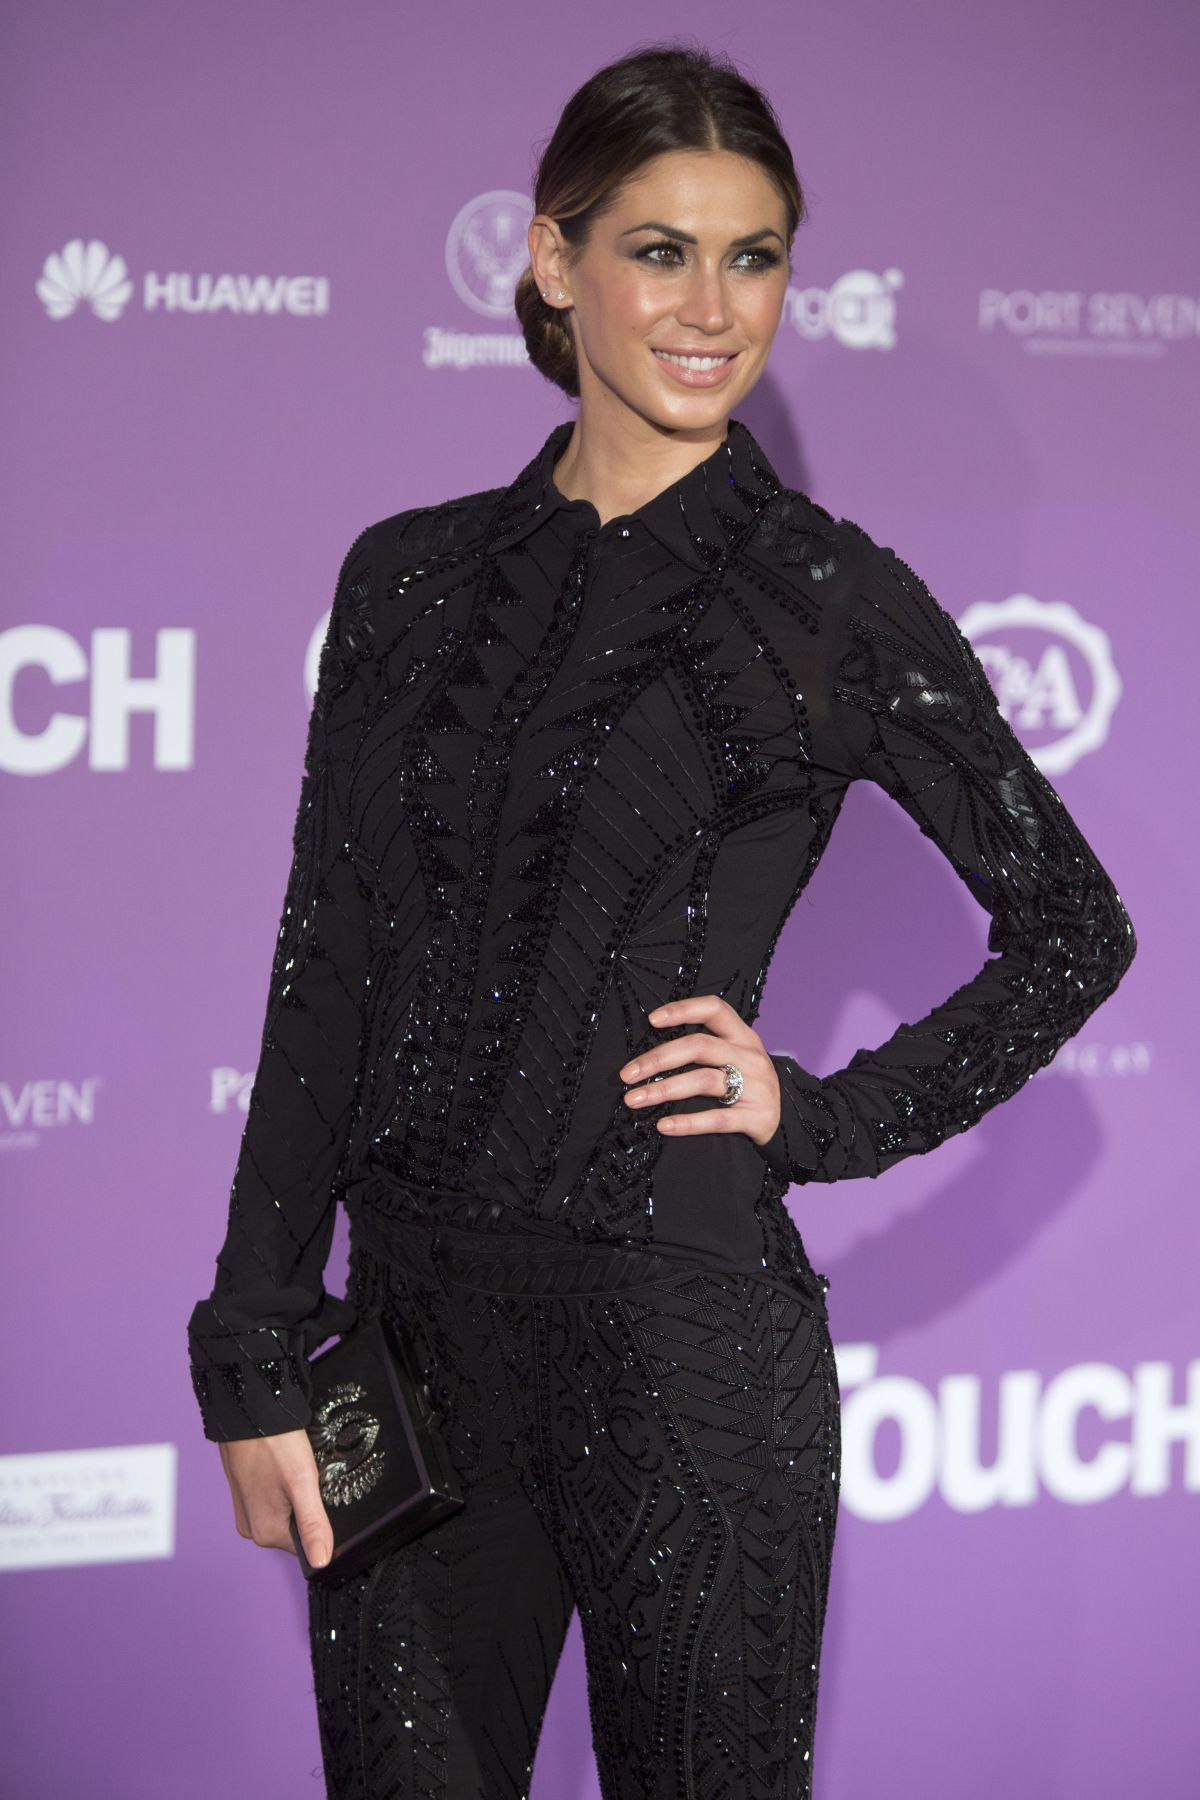 MELISSA SATTA at Intouch Awards 2014 at Port Seven in Dusseldorf